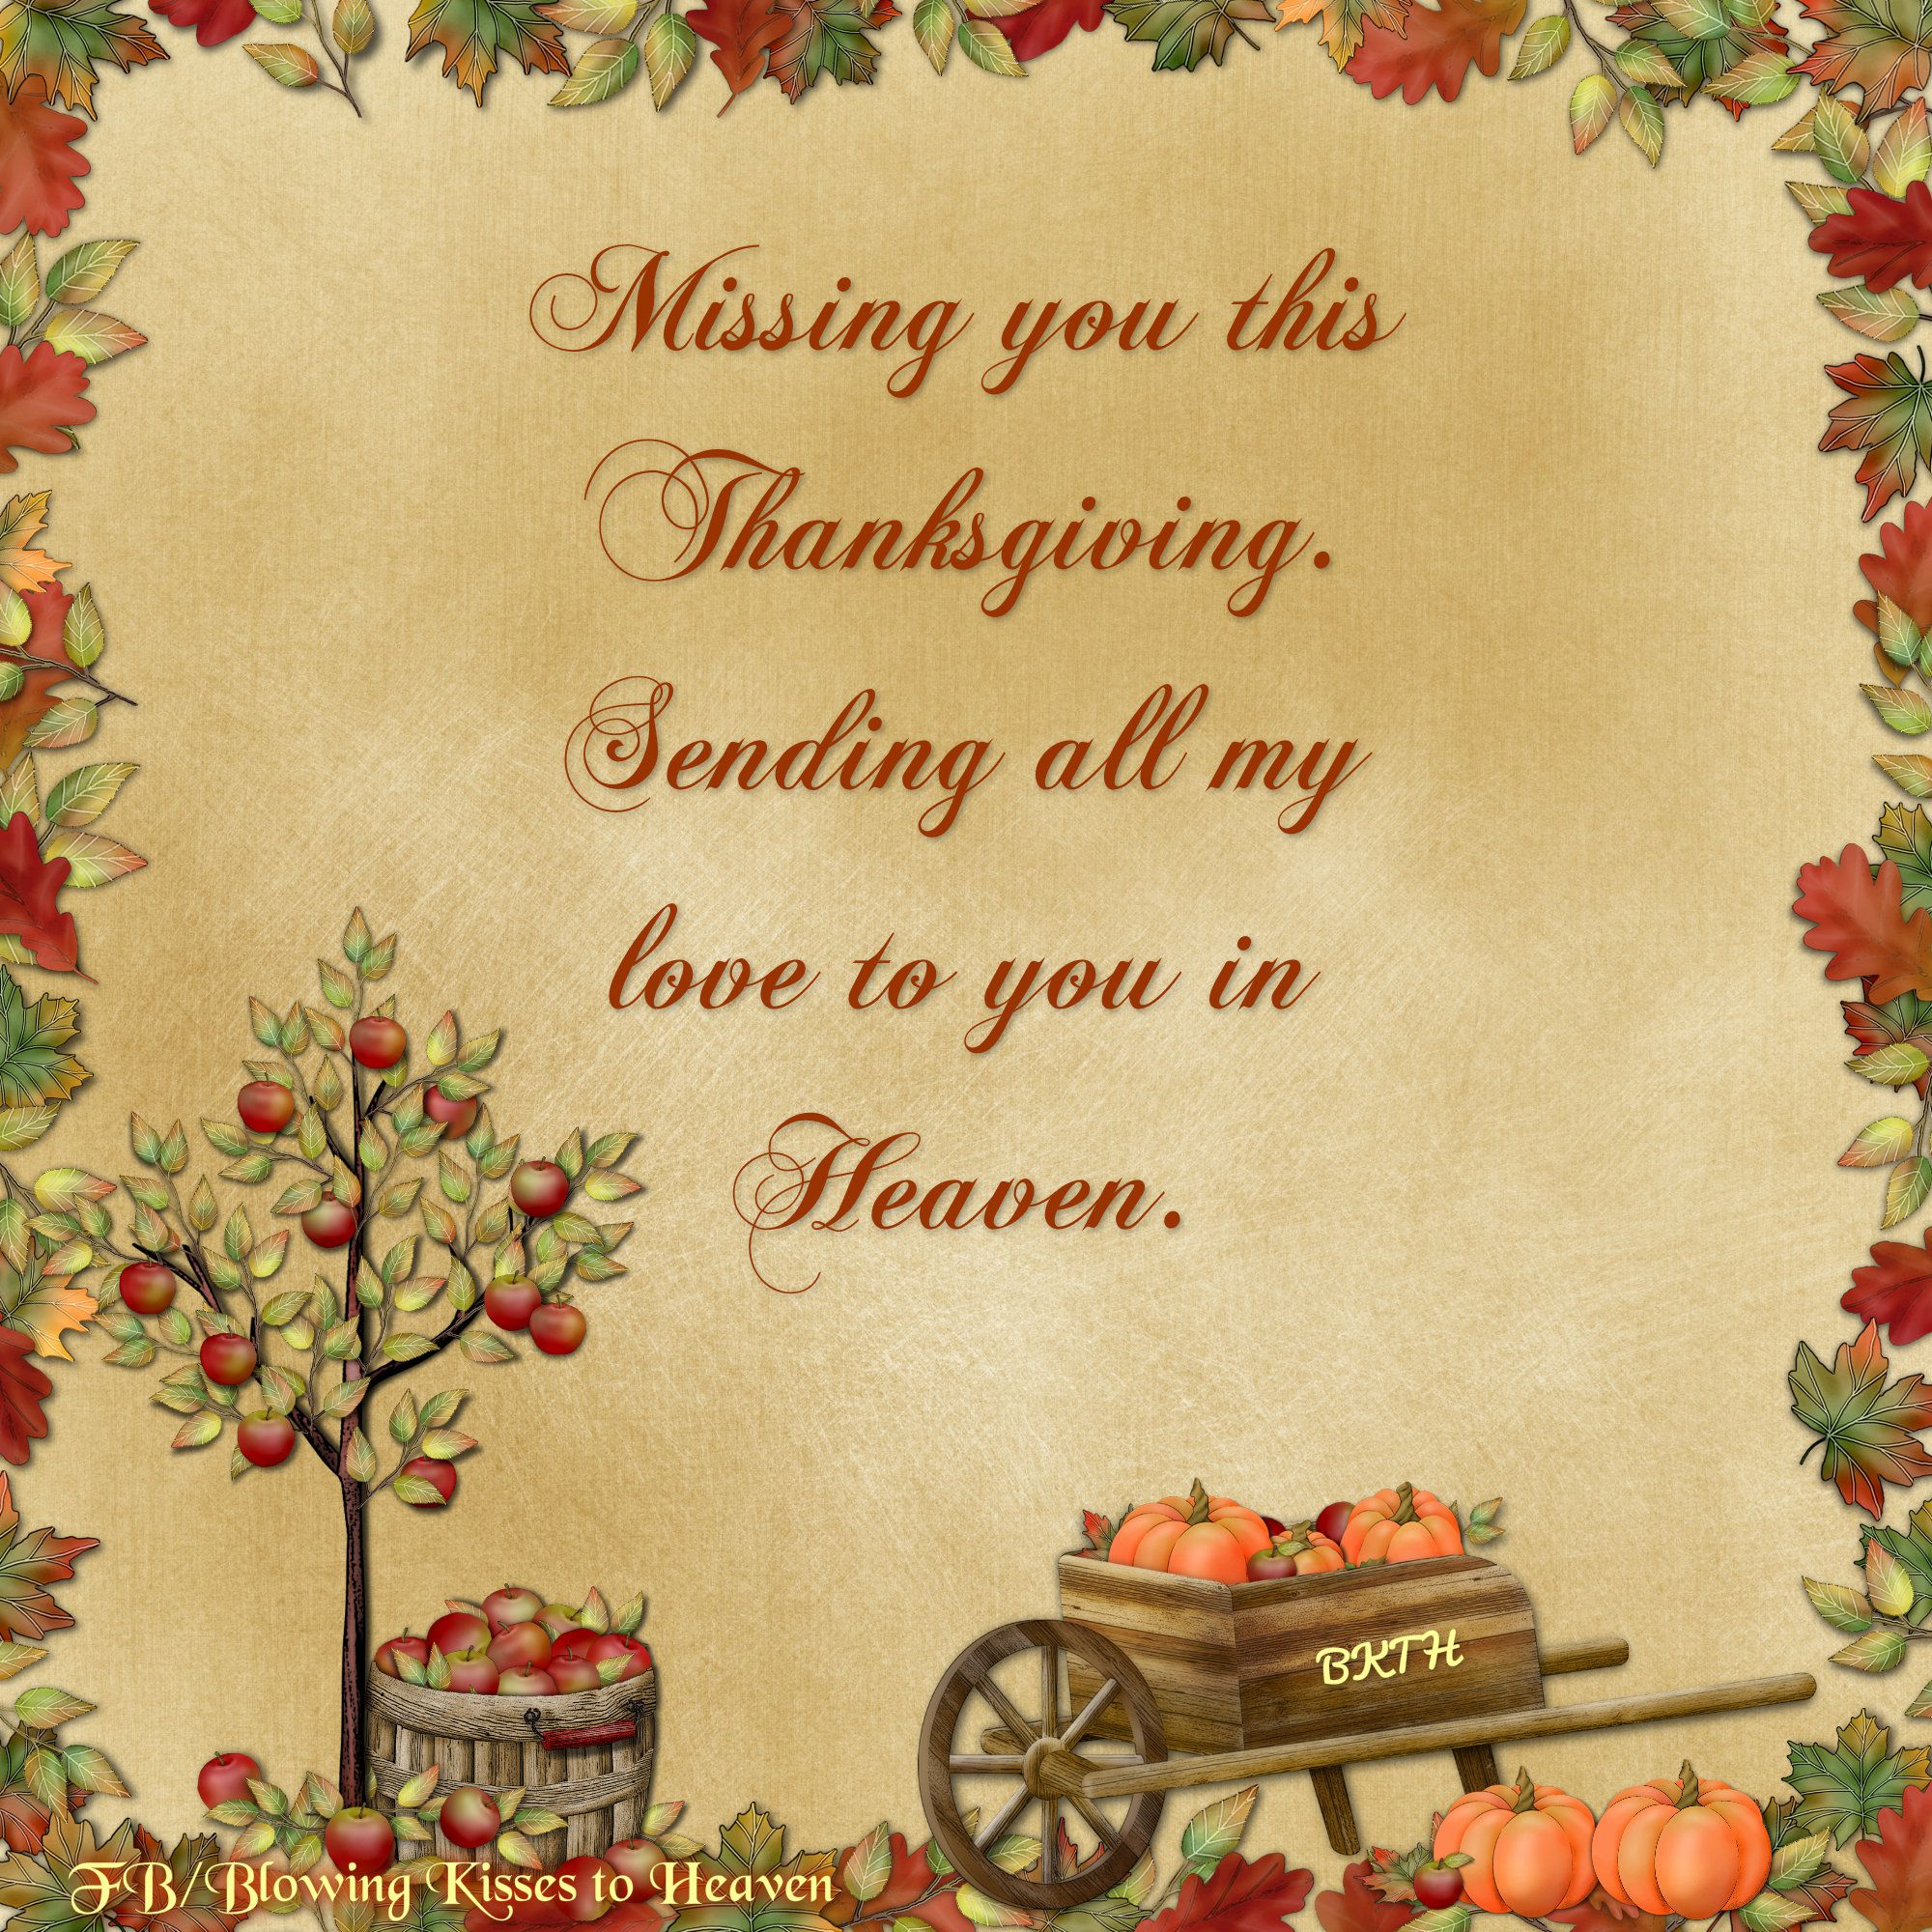 Missing You This Thanksgiving Missing You Miss Mom Miss You Mom